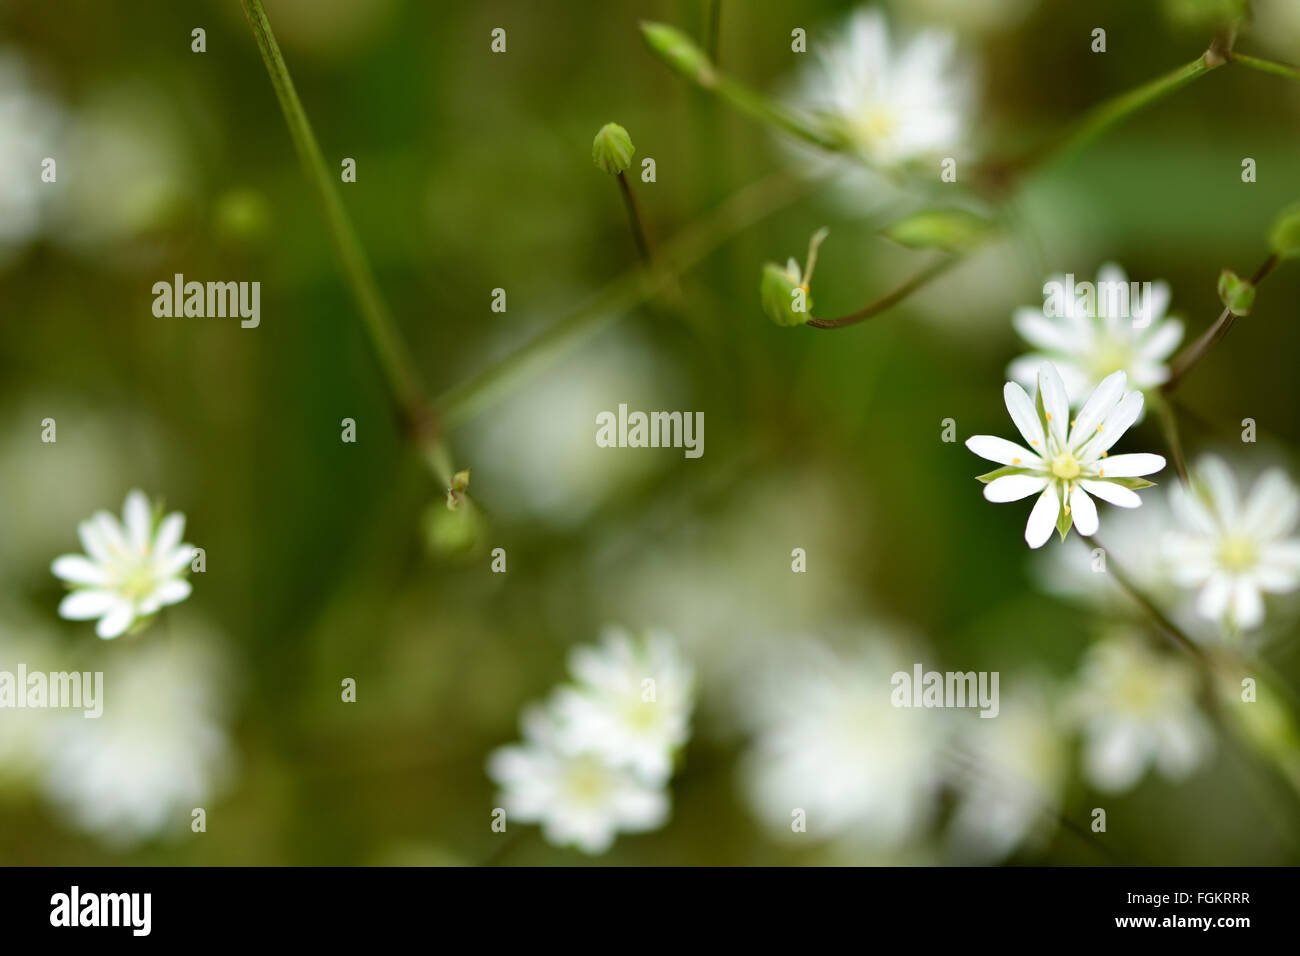 Lesser stitchwort (Stellaria graminea). A white plant in the family Caryophyllaceae, flowering in an English woodland Stock Photo